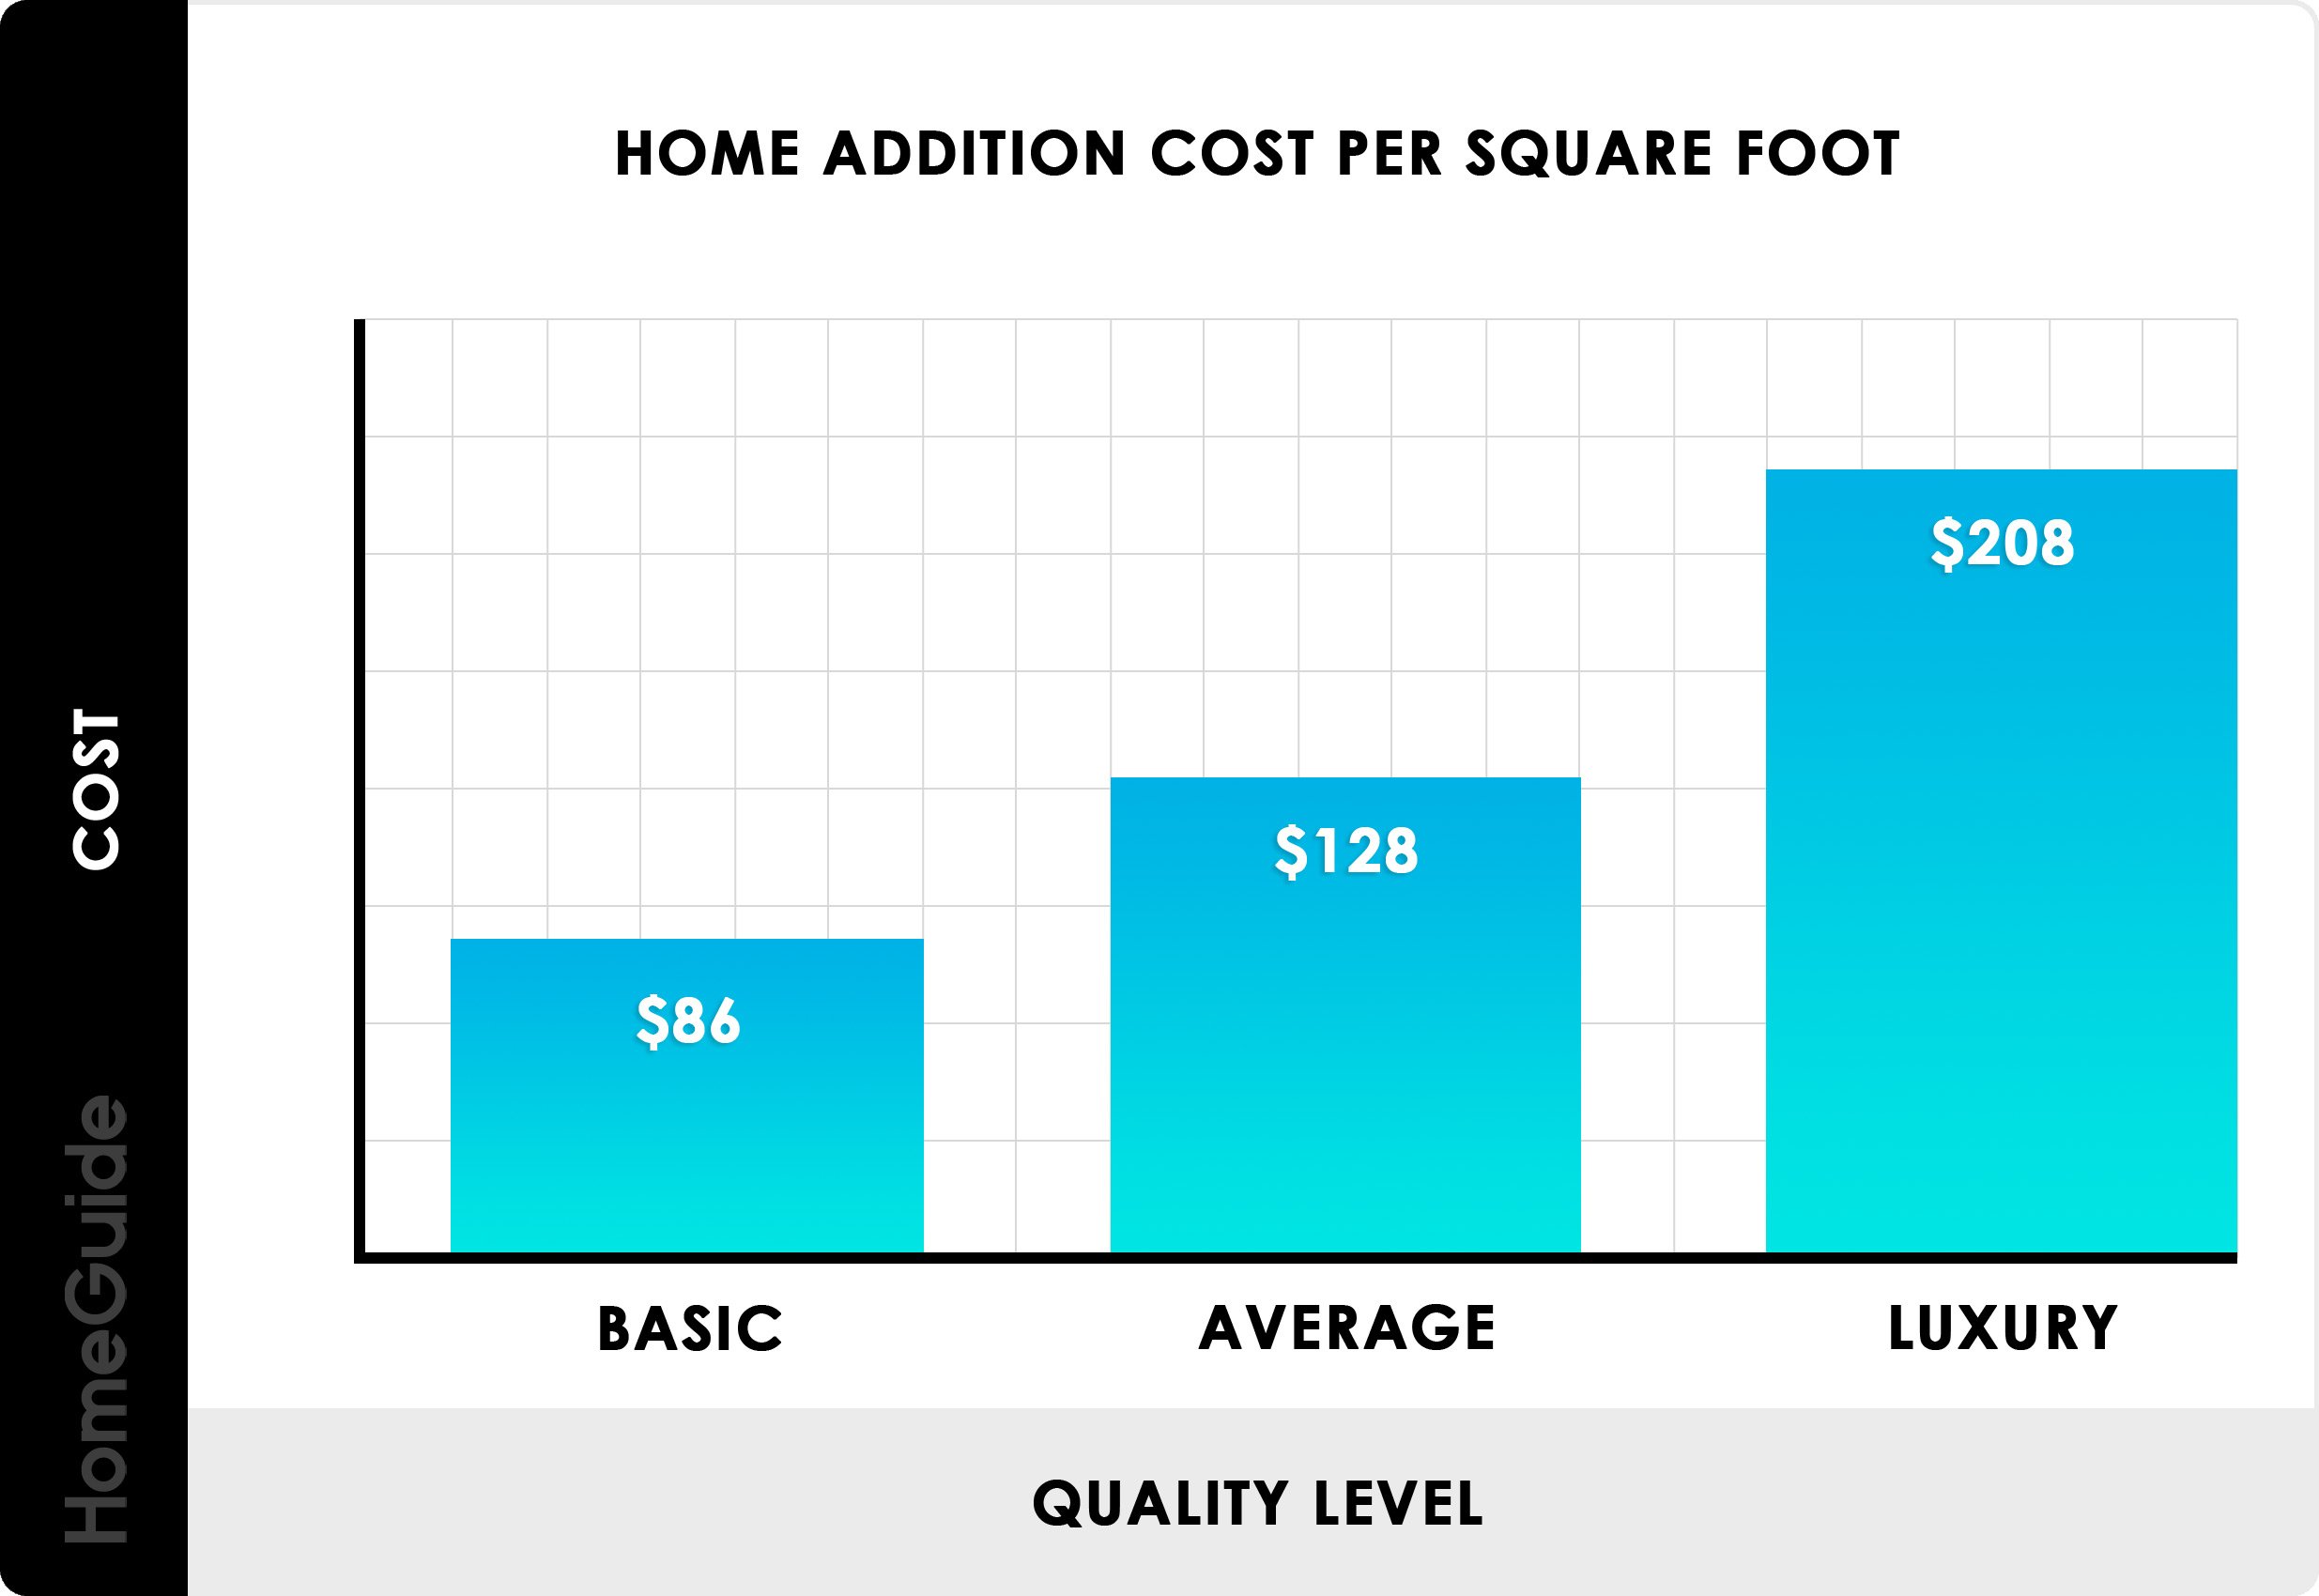 Cost To Add A Room Per Square Foot